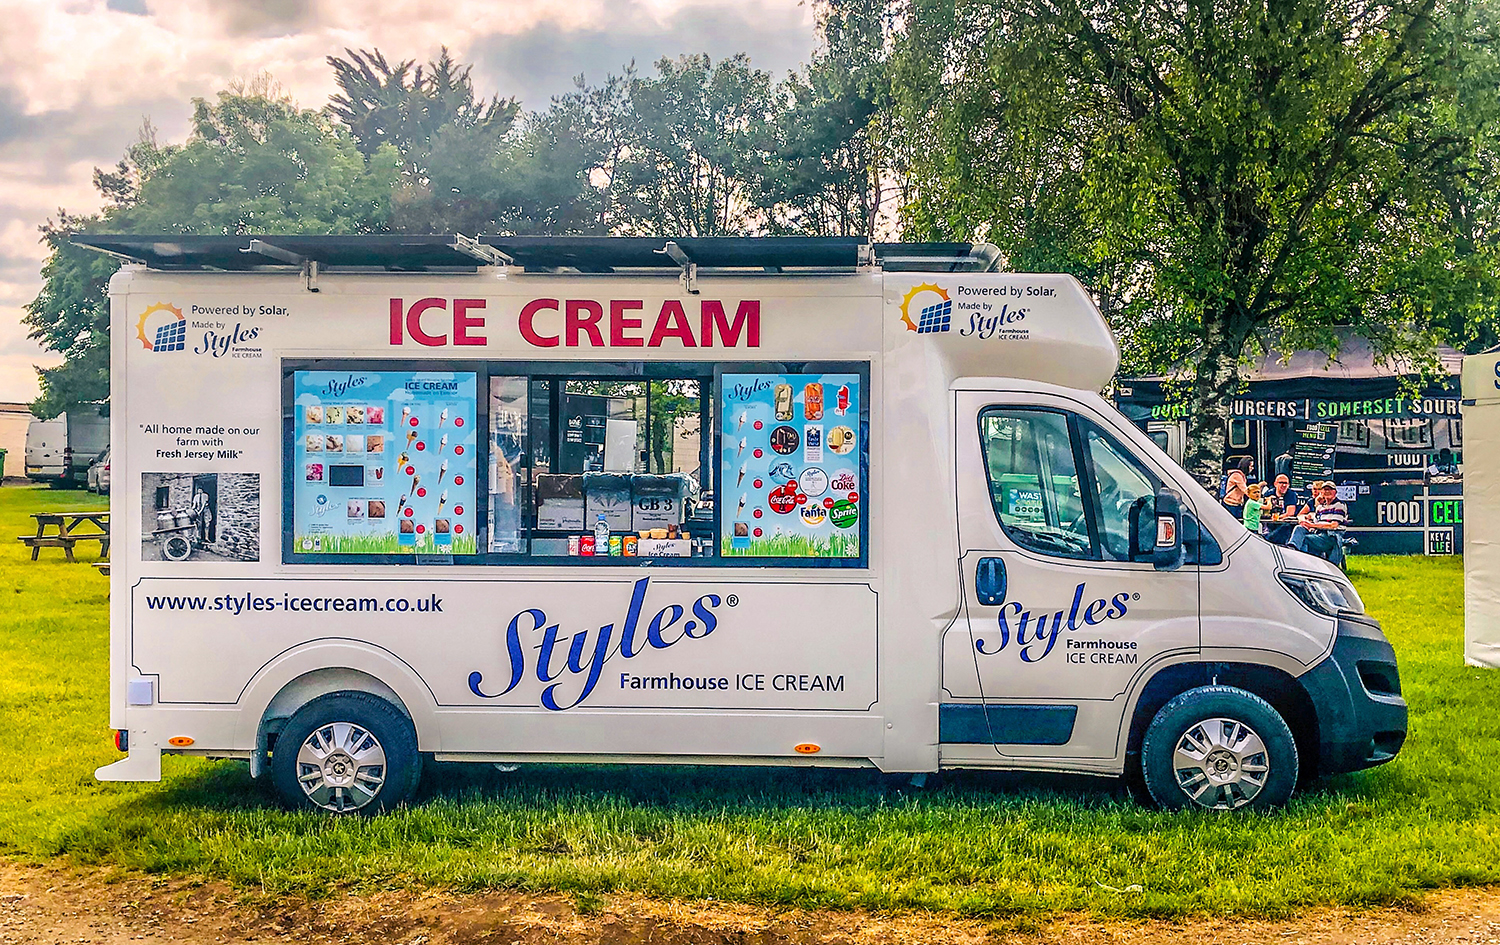 A solar-powered ice cream van on green grass